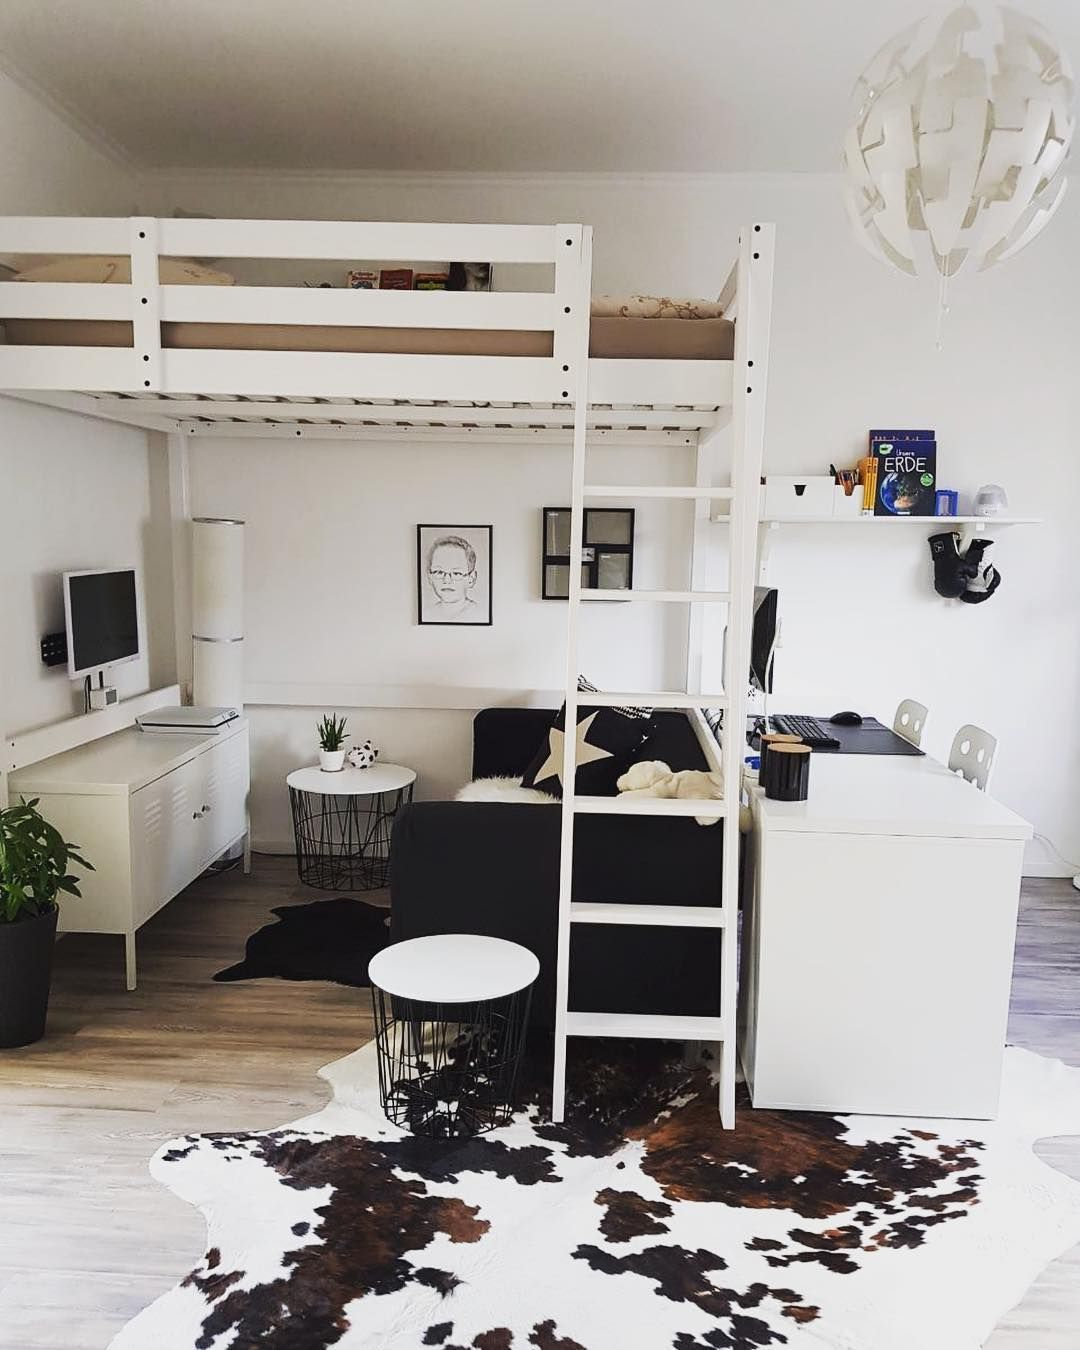 Pin On Best Ikea Bed Hacks How To Upgrade Your Ikea Bed